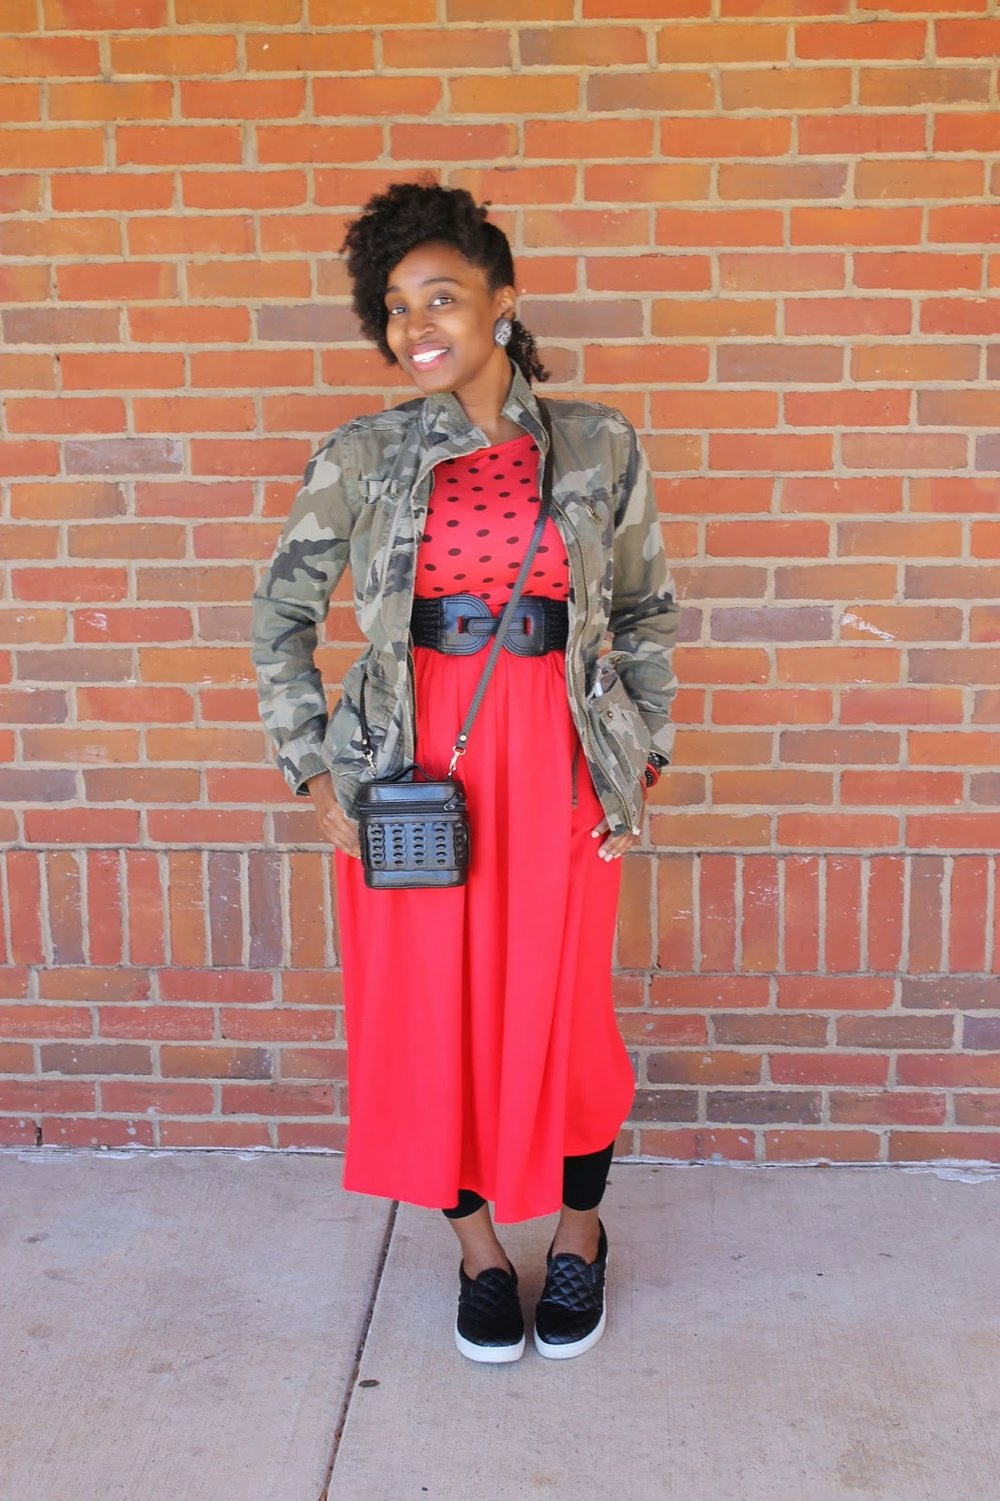 Atlanta style blogger, style blogger, Atlanta blogger, street style, mixed prints, polka dots, camouflage